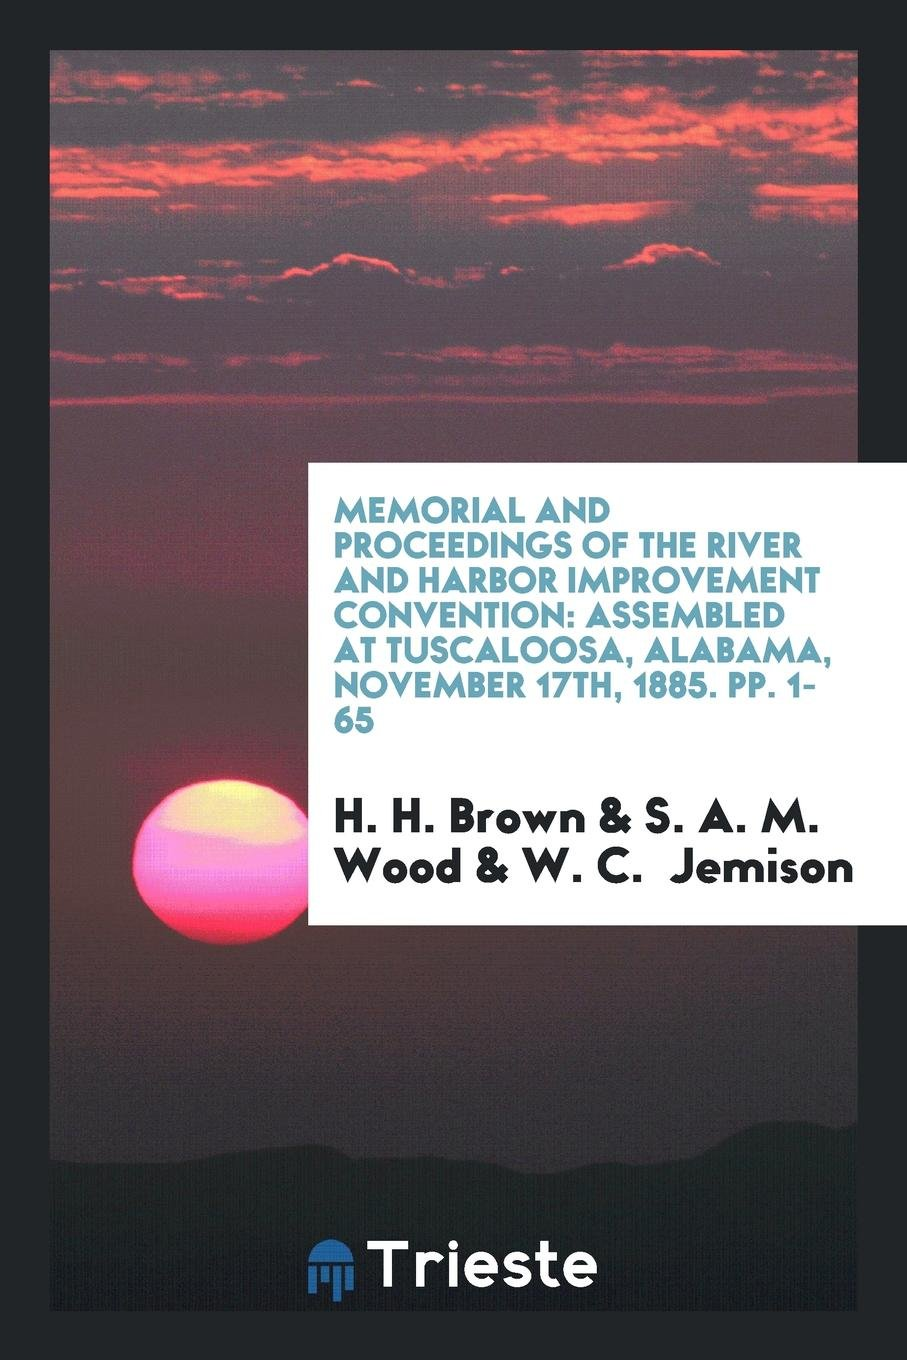 Memorial and Proceedings of the River and Harbor Improvement Convention: Assembled at Tuscaloosa, Alabama, November 17th, 1885. pp. 1-65 ebook